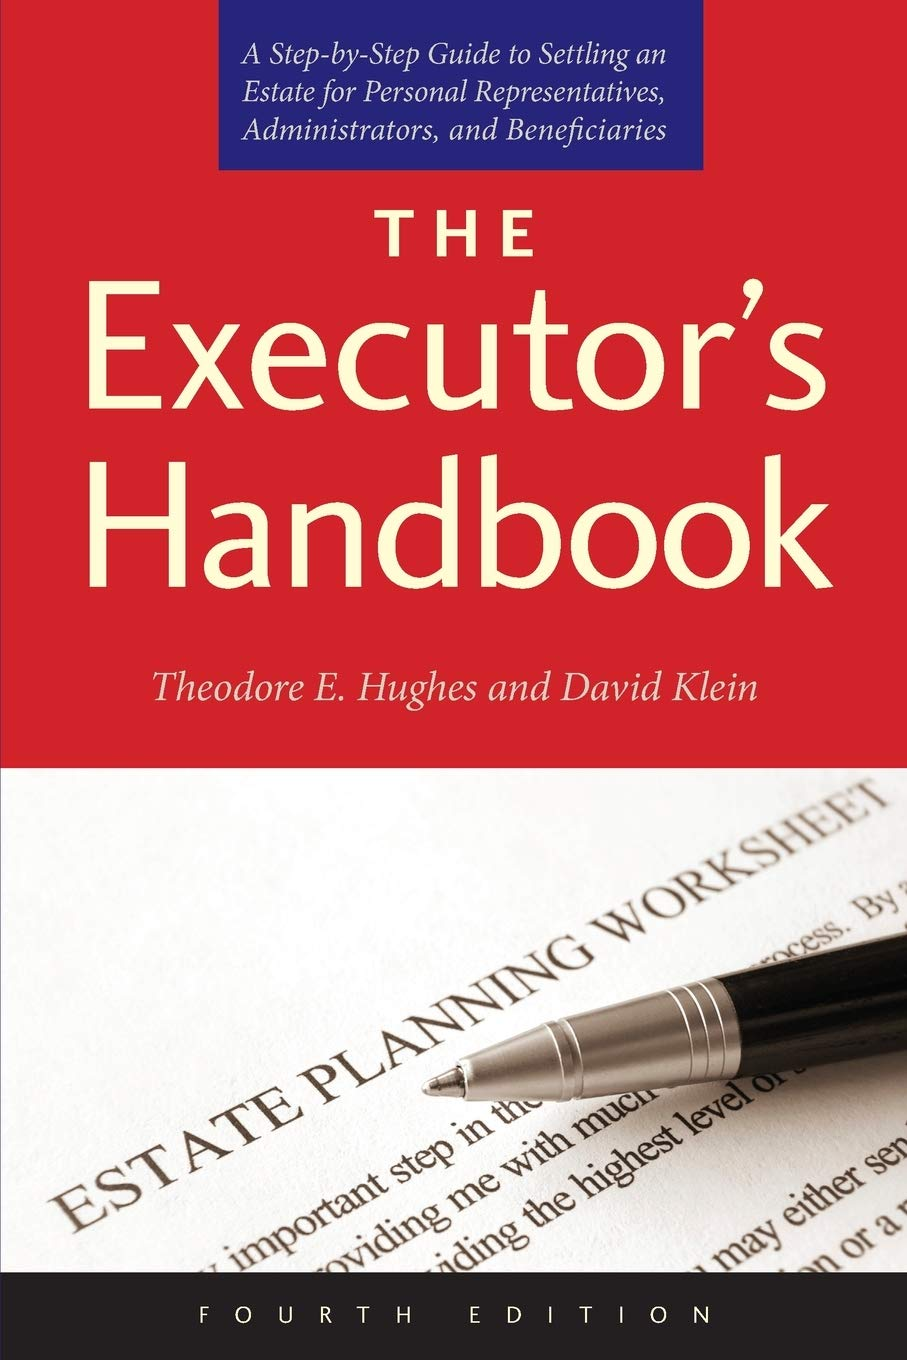 Image for The Executor's Handbook: A Step-by-Step Guide to Settling an Estate for Personal Representatives, Administrators, and Beneficiaries, Fourth Edition